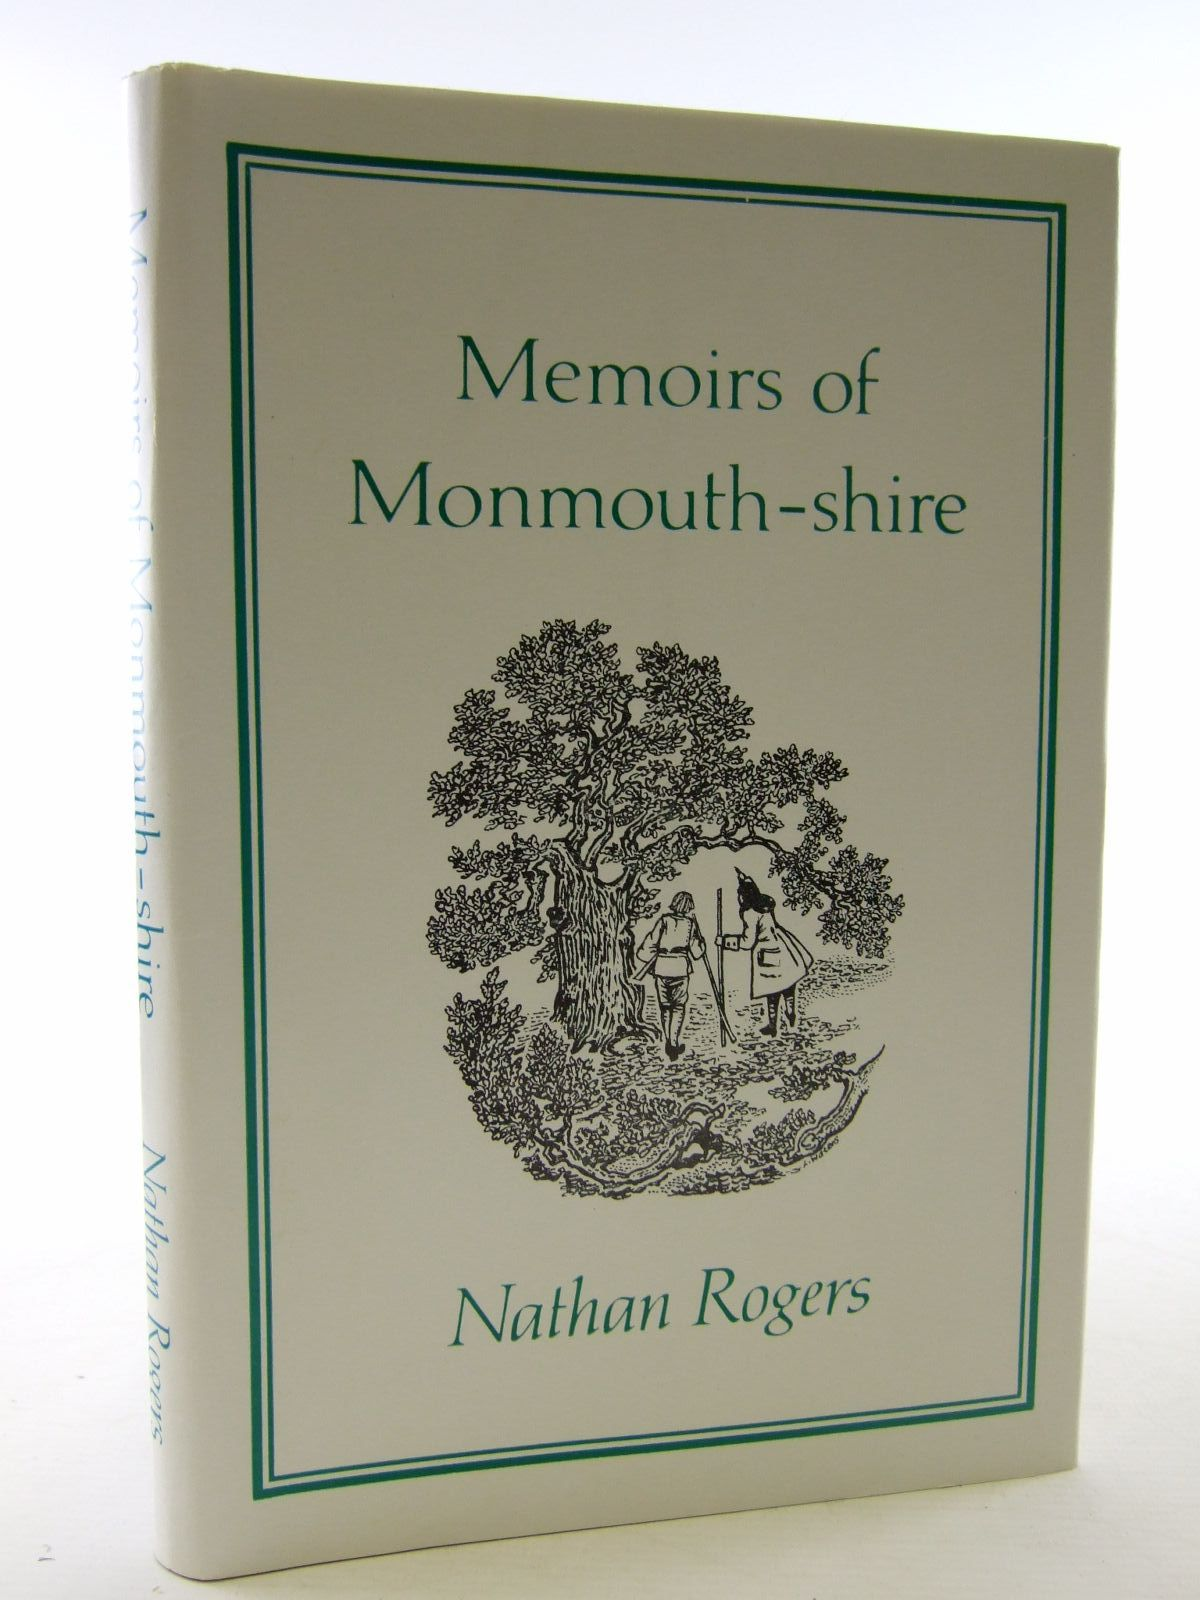 Photo of MEMOIRS OF MONMOUTH-SHIRE 1708 written by Rogers, Nathan illustrated by Waters, Linda published by Moss Rose Press (STOCK CODE: 1707290)  for sale by Stella & Rose's Books